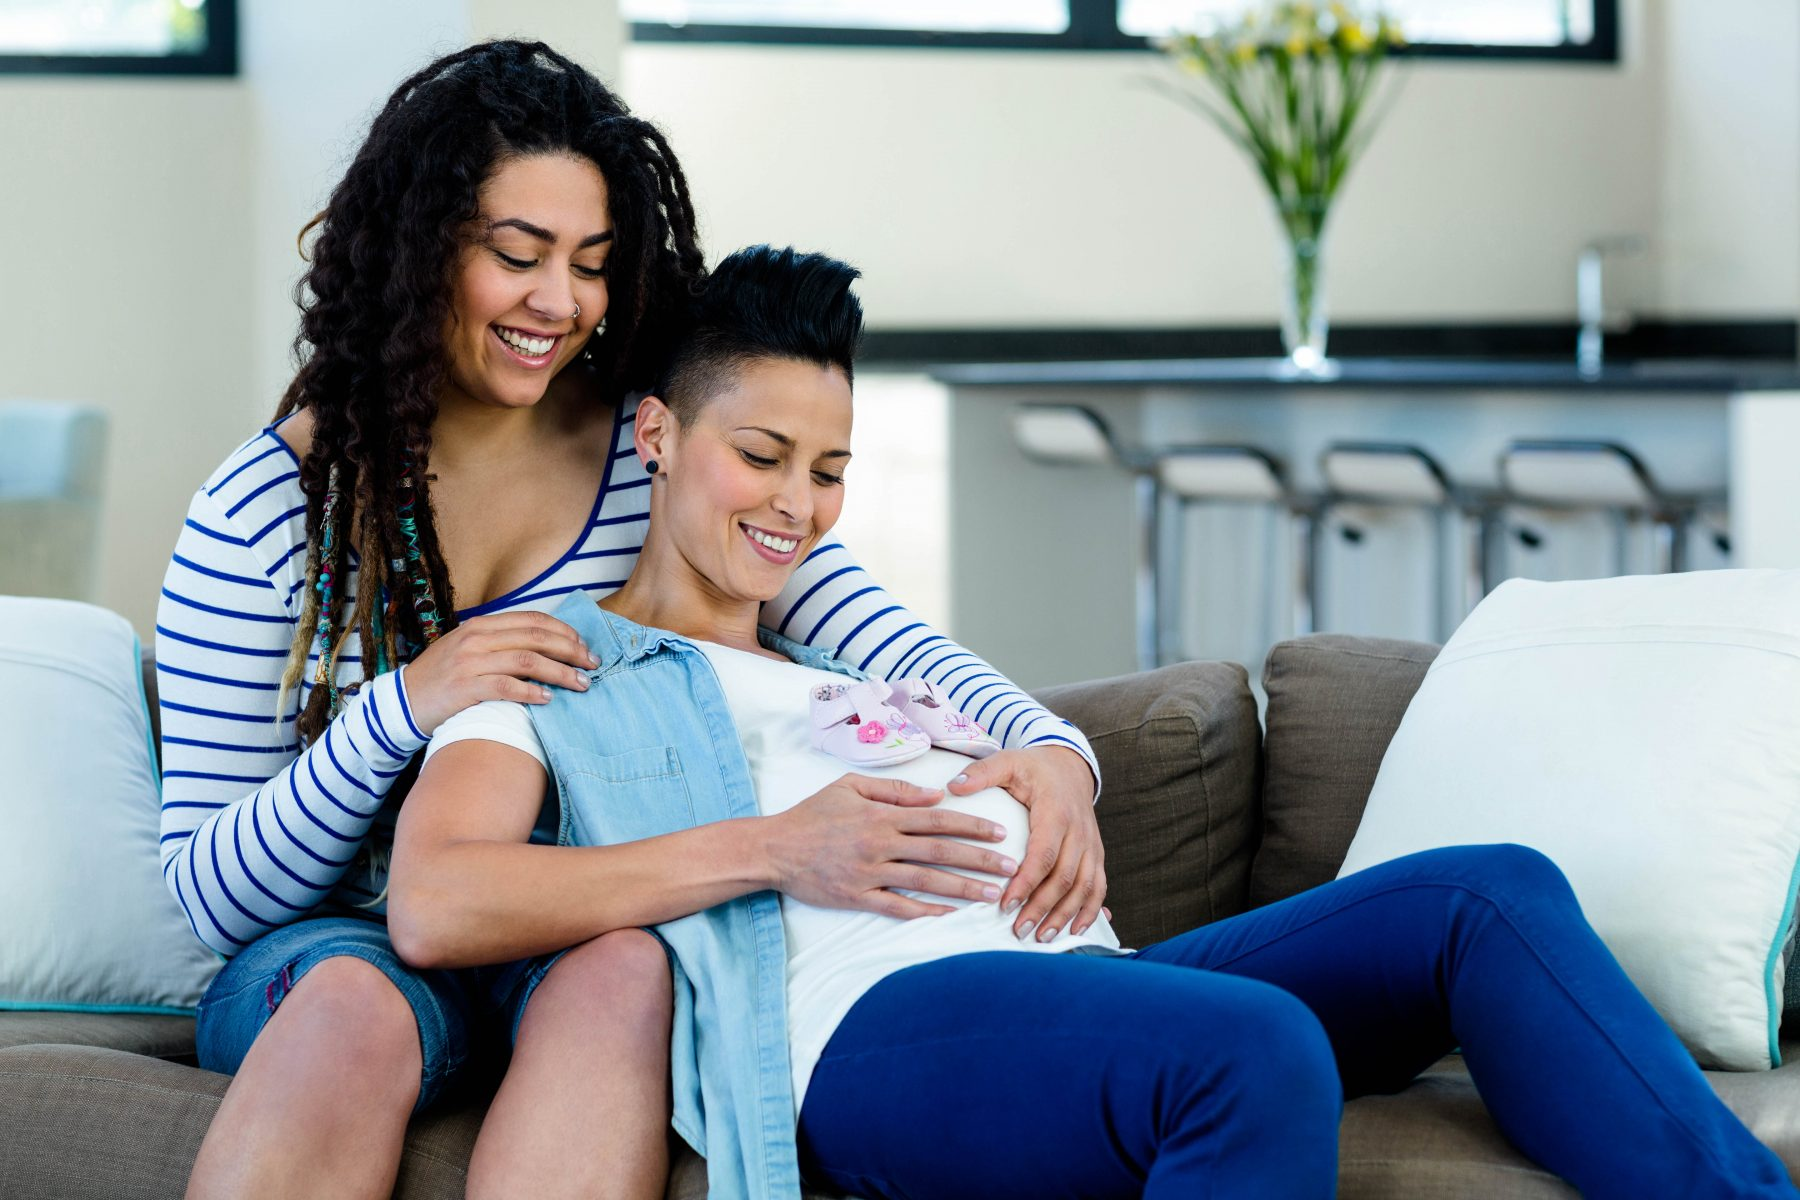 Pregnant lesbian couple sitting on sofa with a pair of pink baby shoes